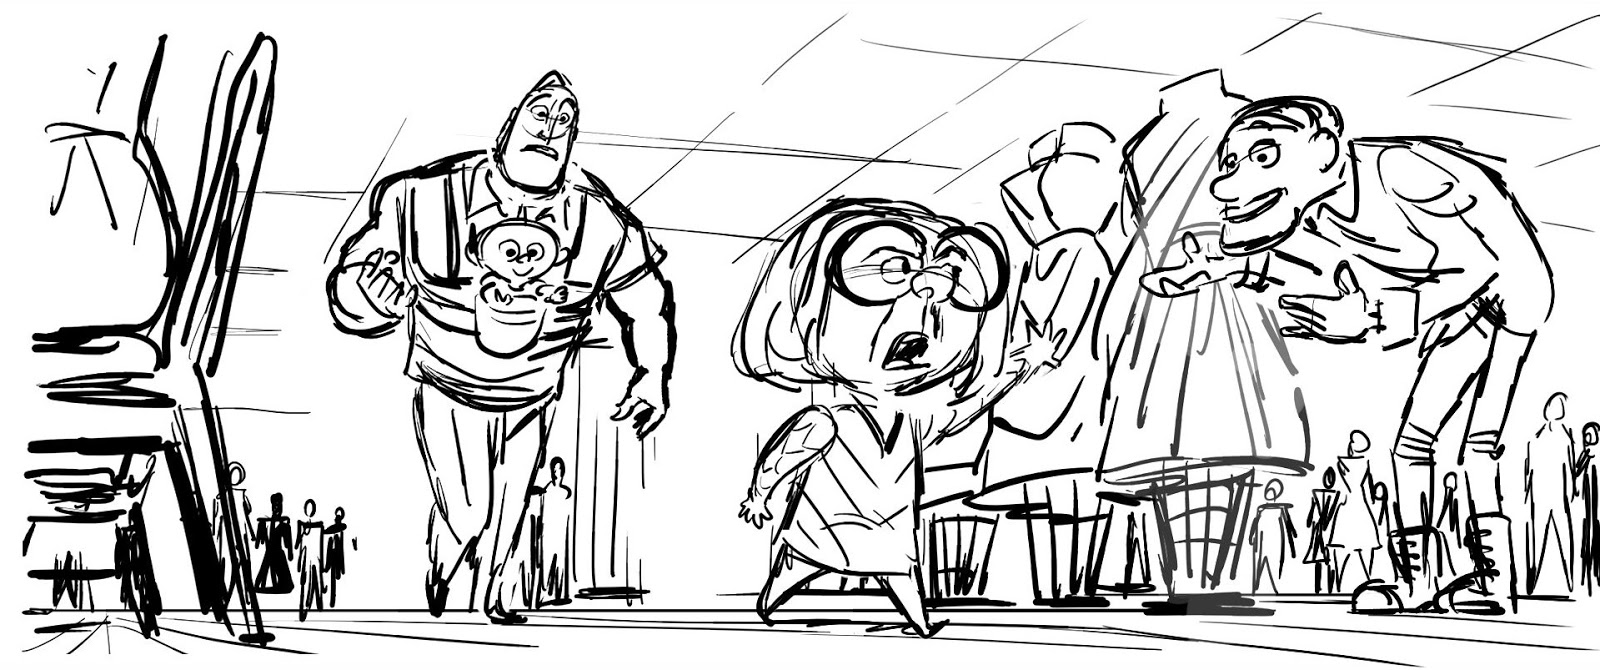 Get A Sneak Peek At Several Special Features Deleted Scenes From The Incredibles 2